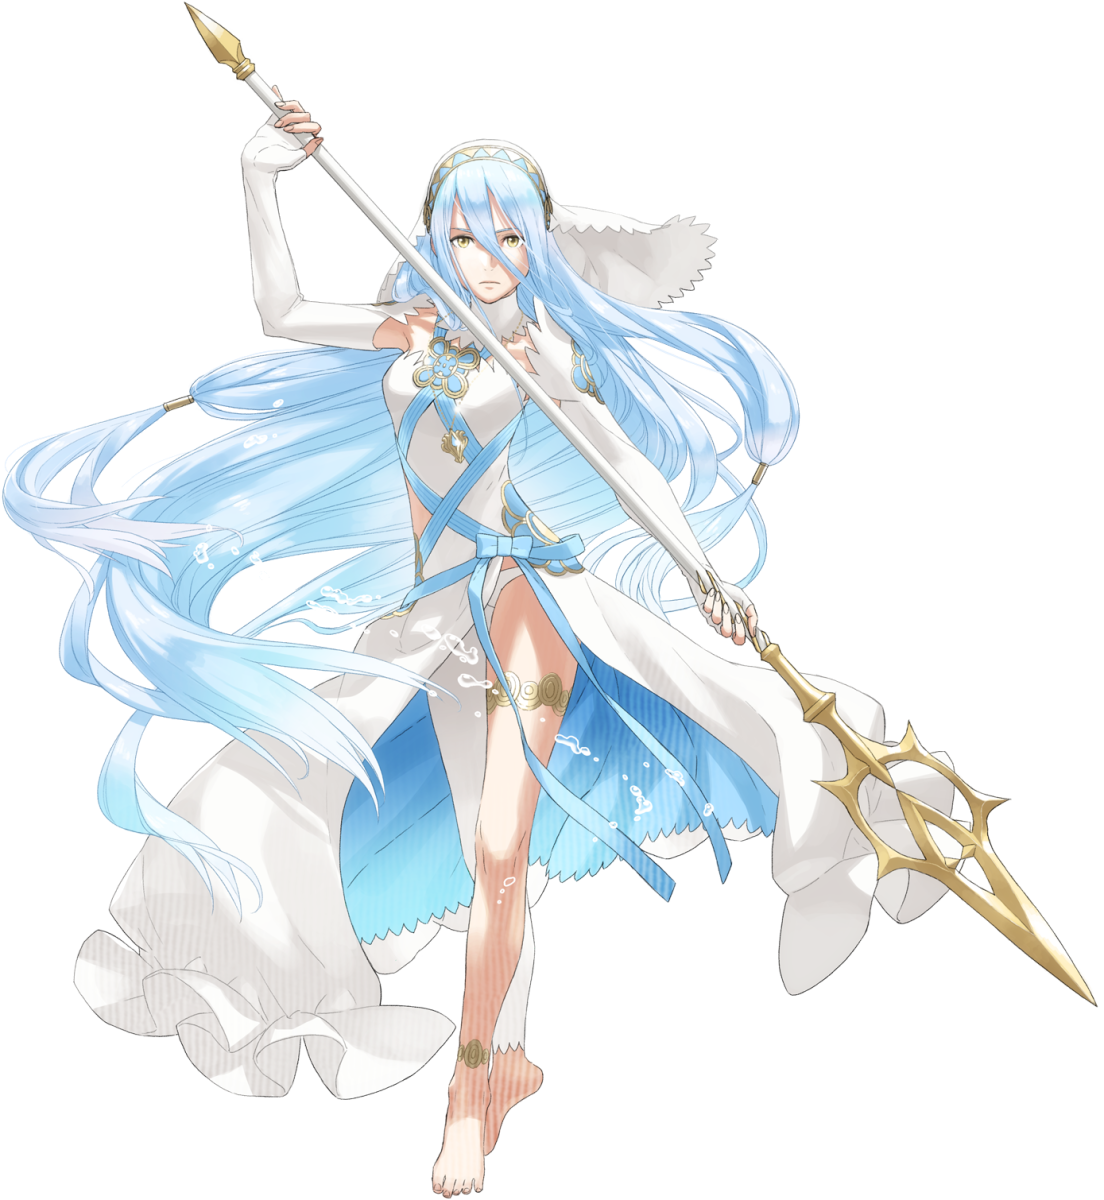 Azura is an important character in Fire Emblem Fates